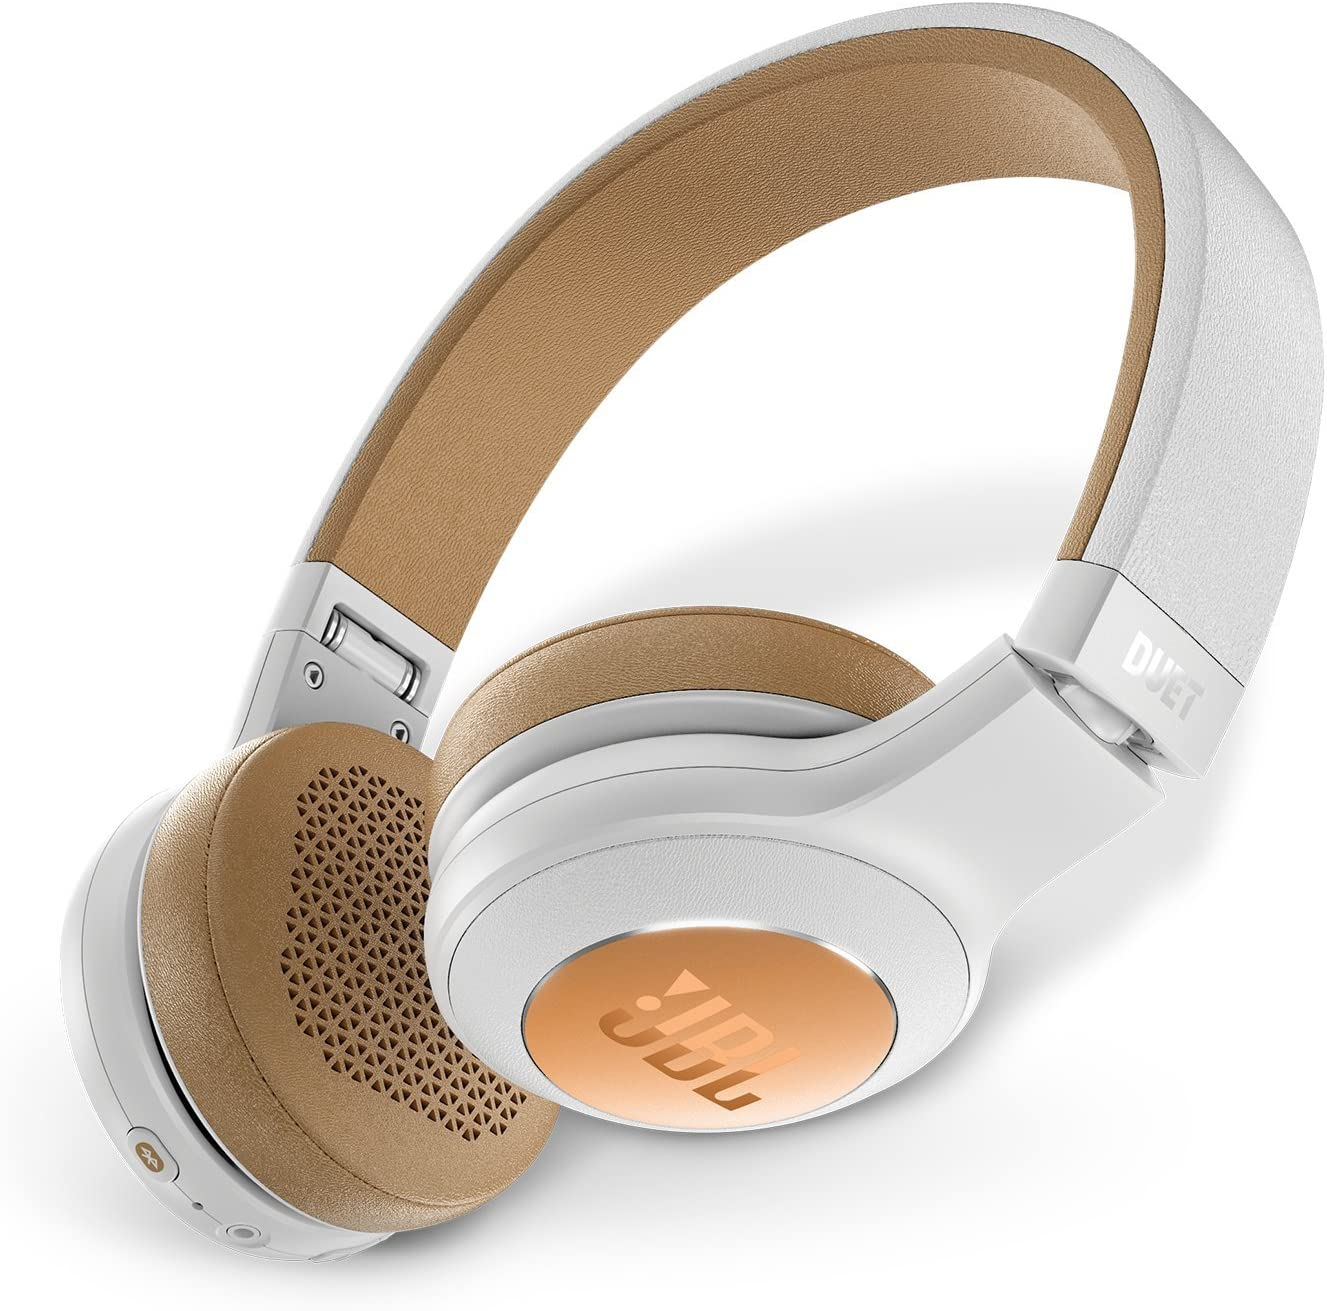 JBL Duet Bluetooth Wireless On-Ear Headphones - Silver